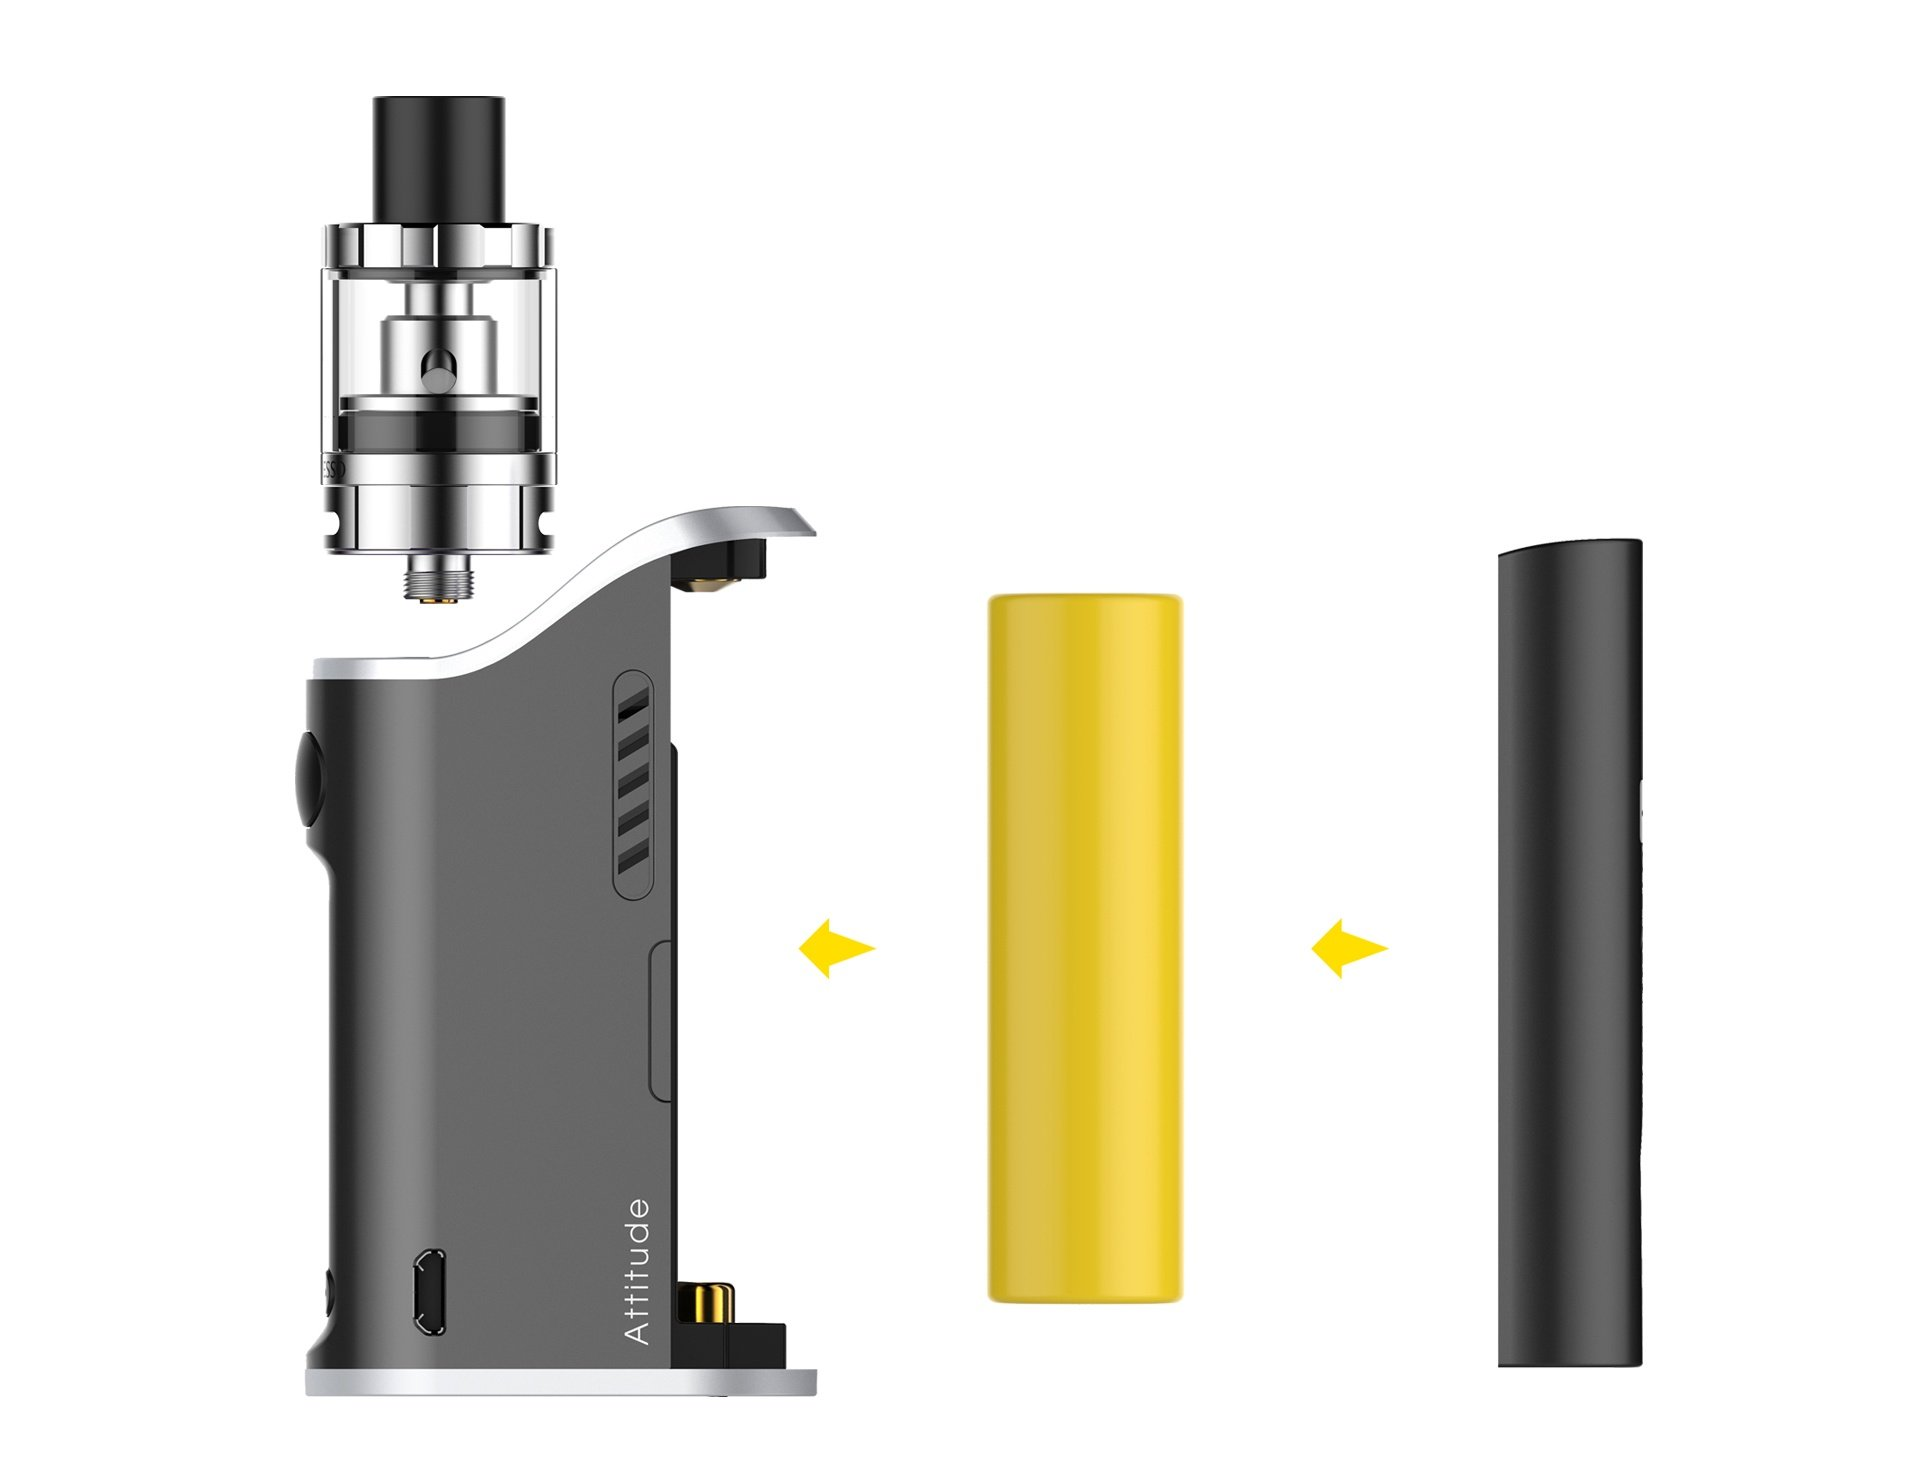 Vaporesso Attitude 80W TC & Estoc 2mL/4mL 2-in-1 EUC Starter Kit